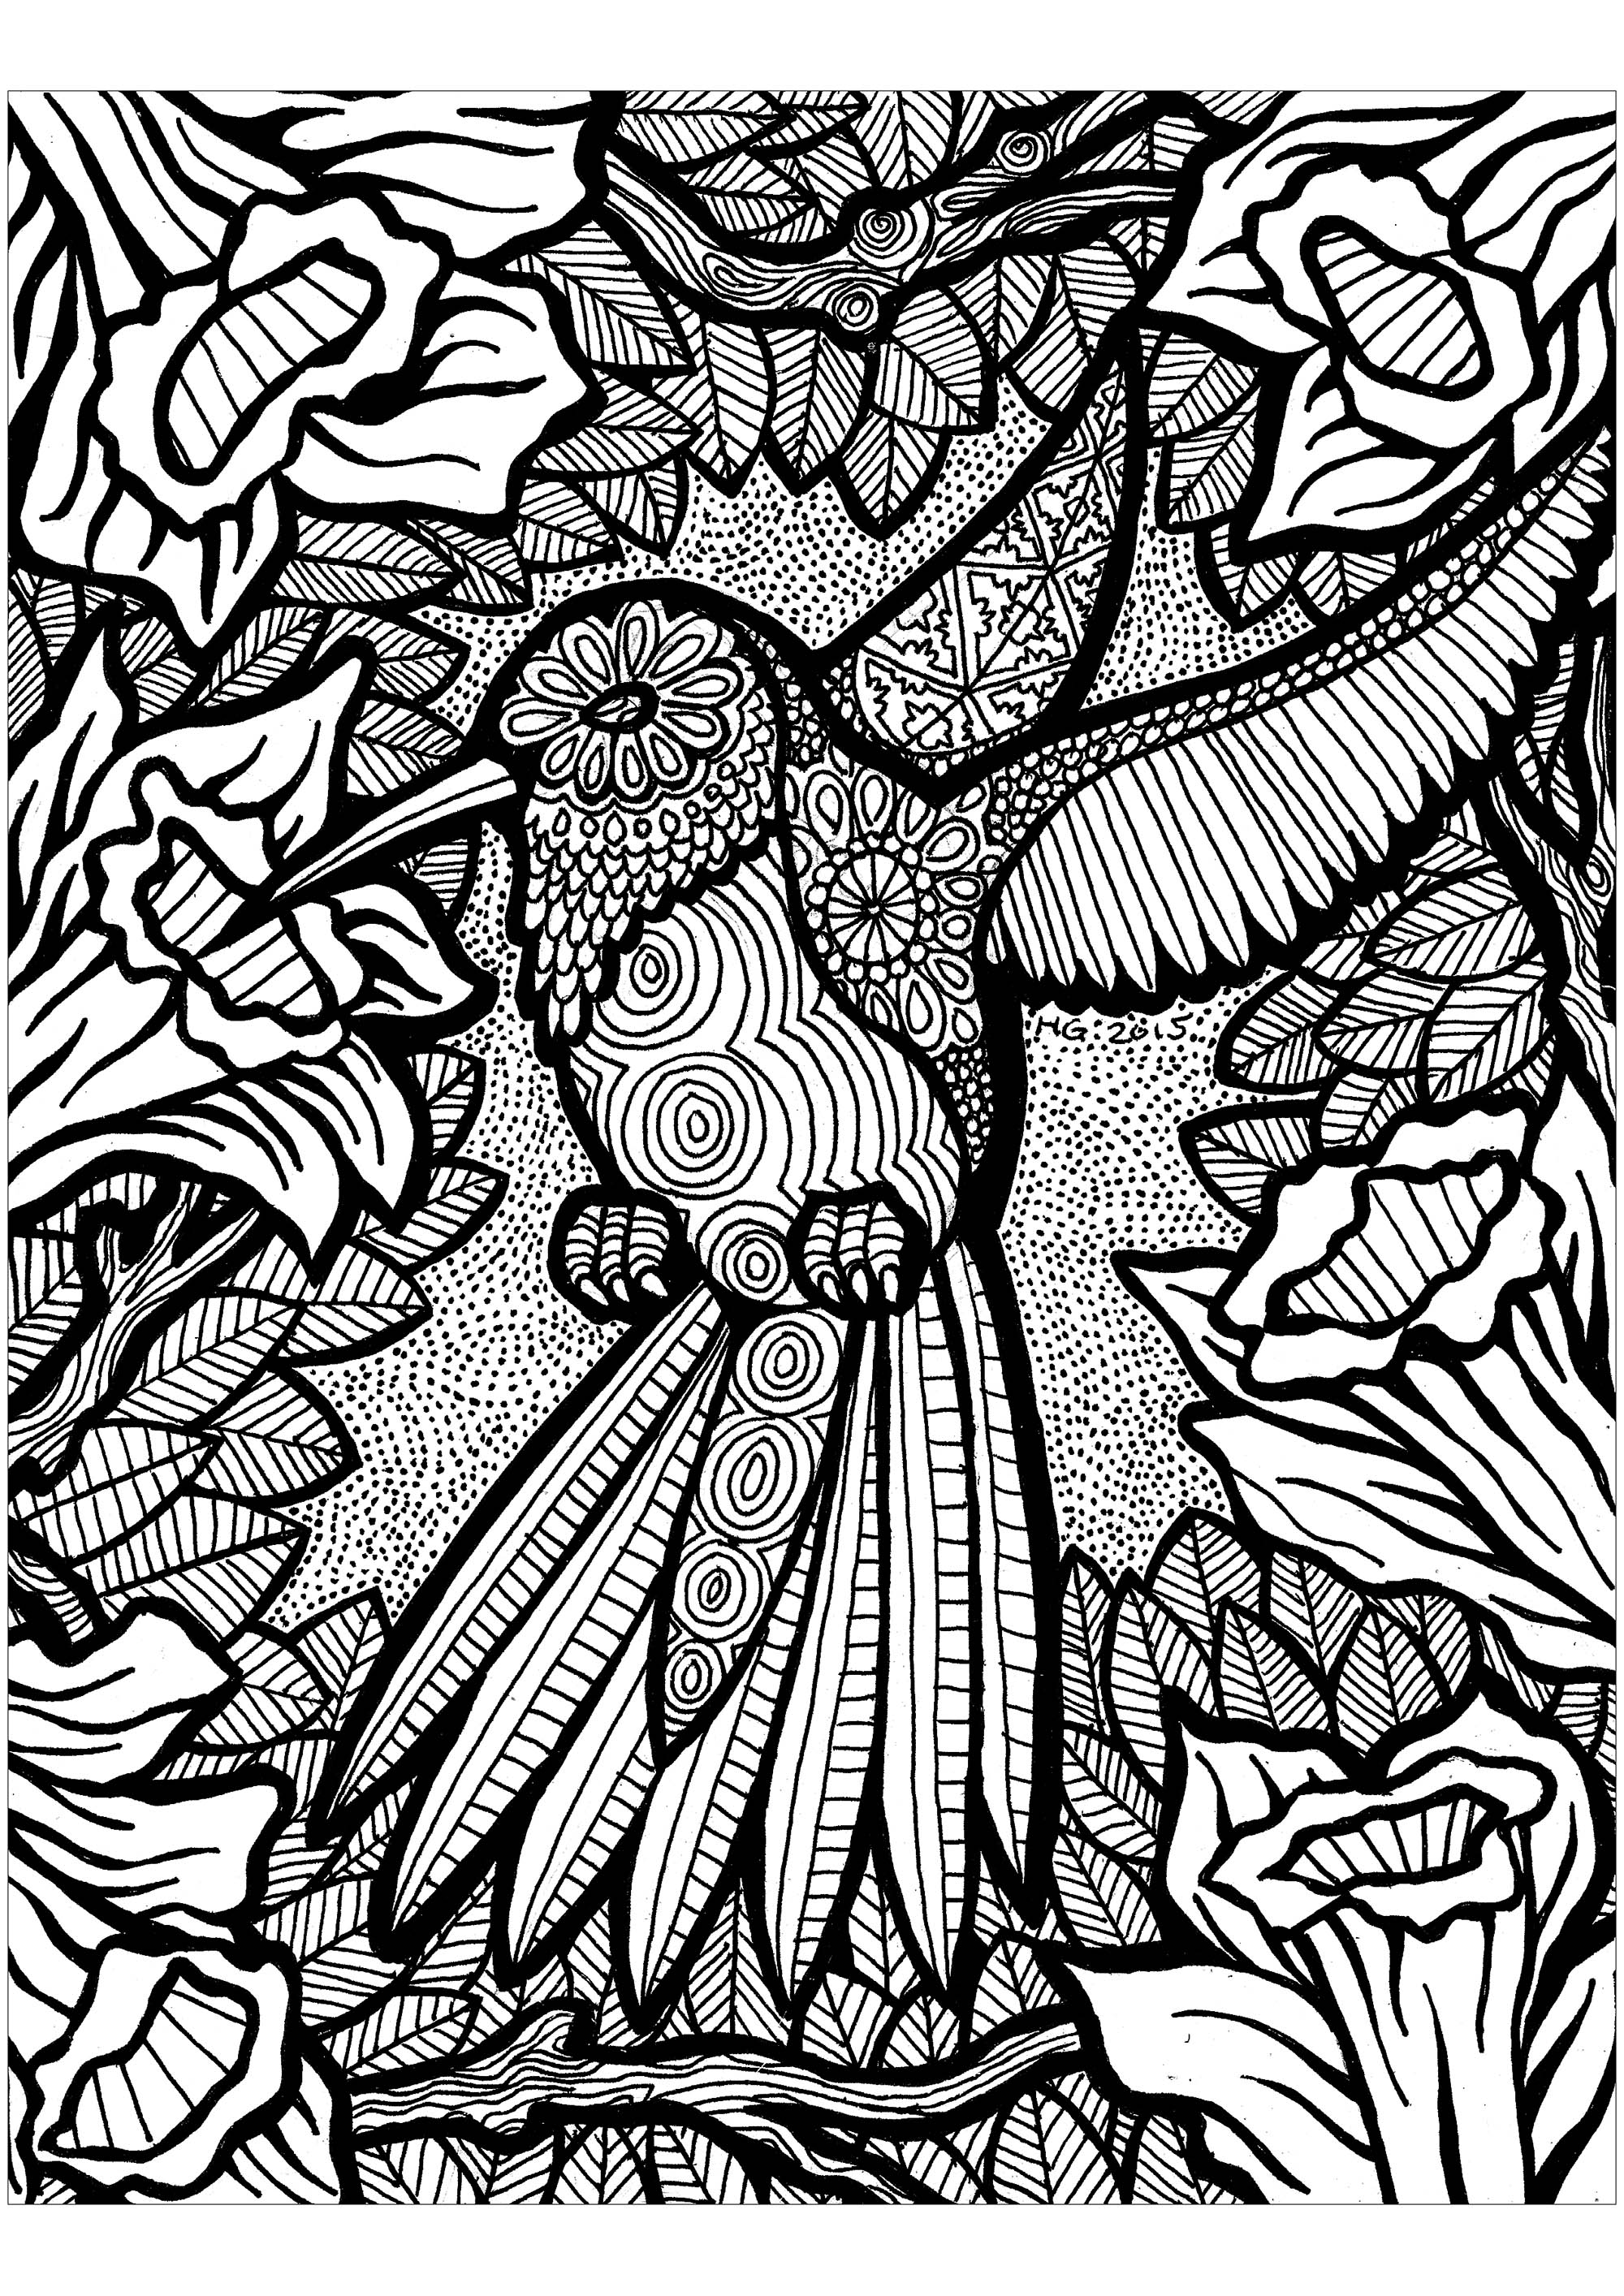 Help this hummingbird to fly, it's missing colors to touch the sky !